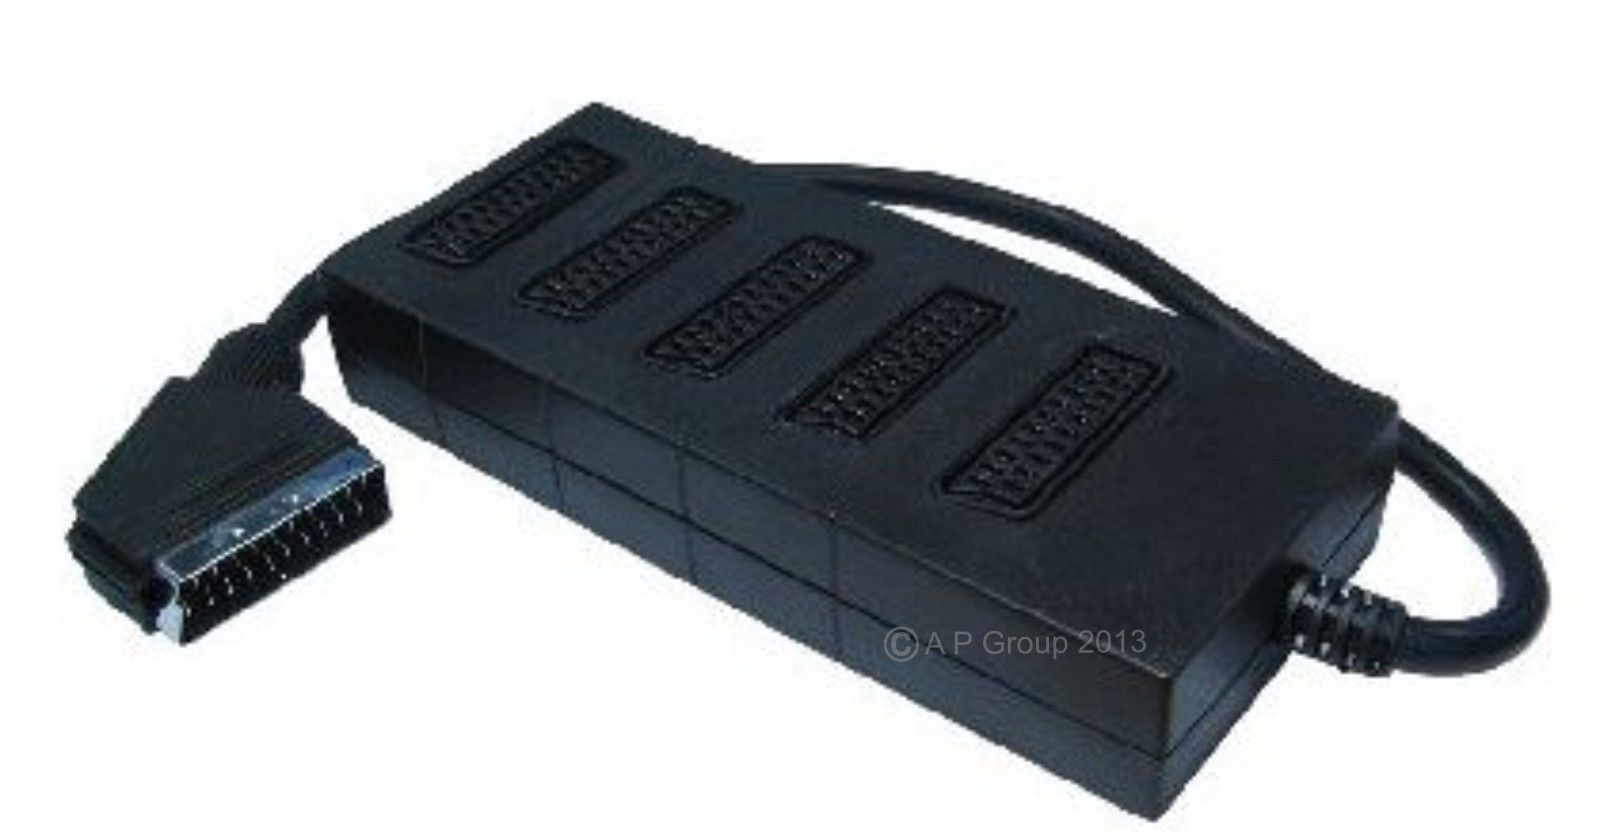 5 Way Scart Lead Cable Wire Splitter Adapter Switch Box Pinterest 2 503 Gbp Ebay